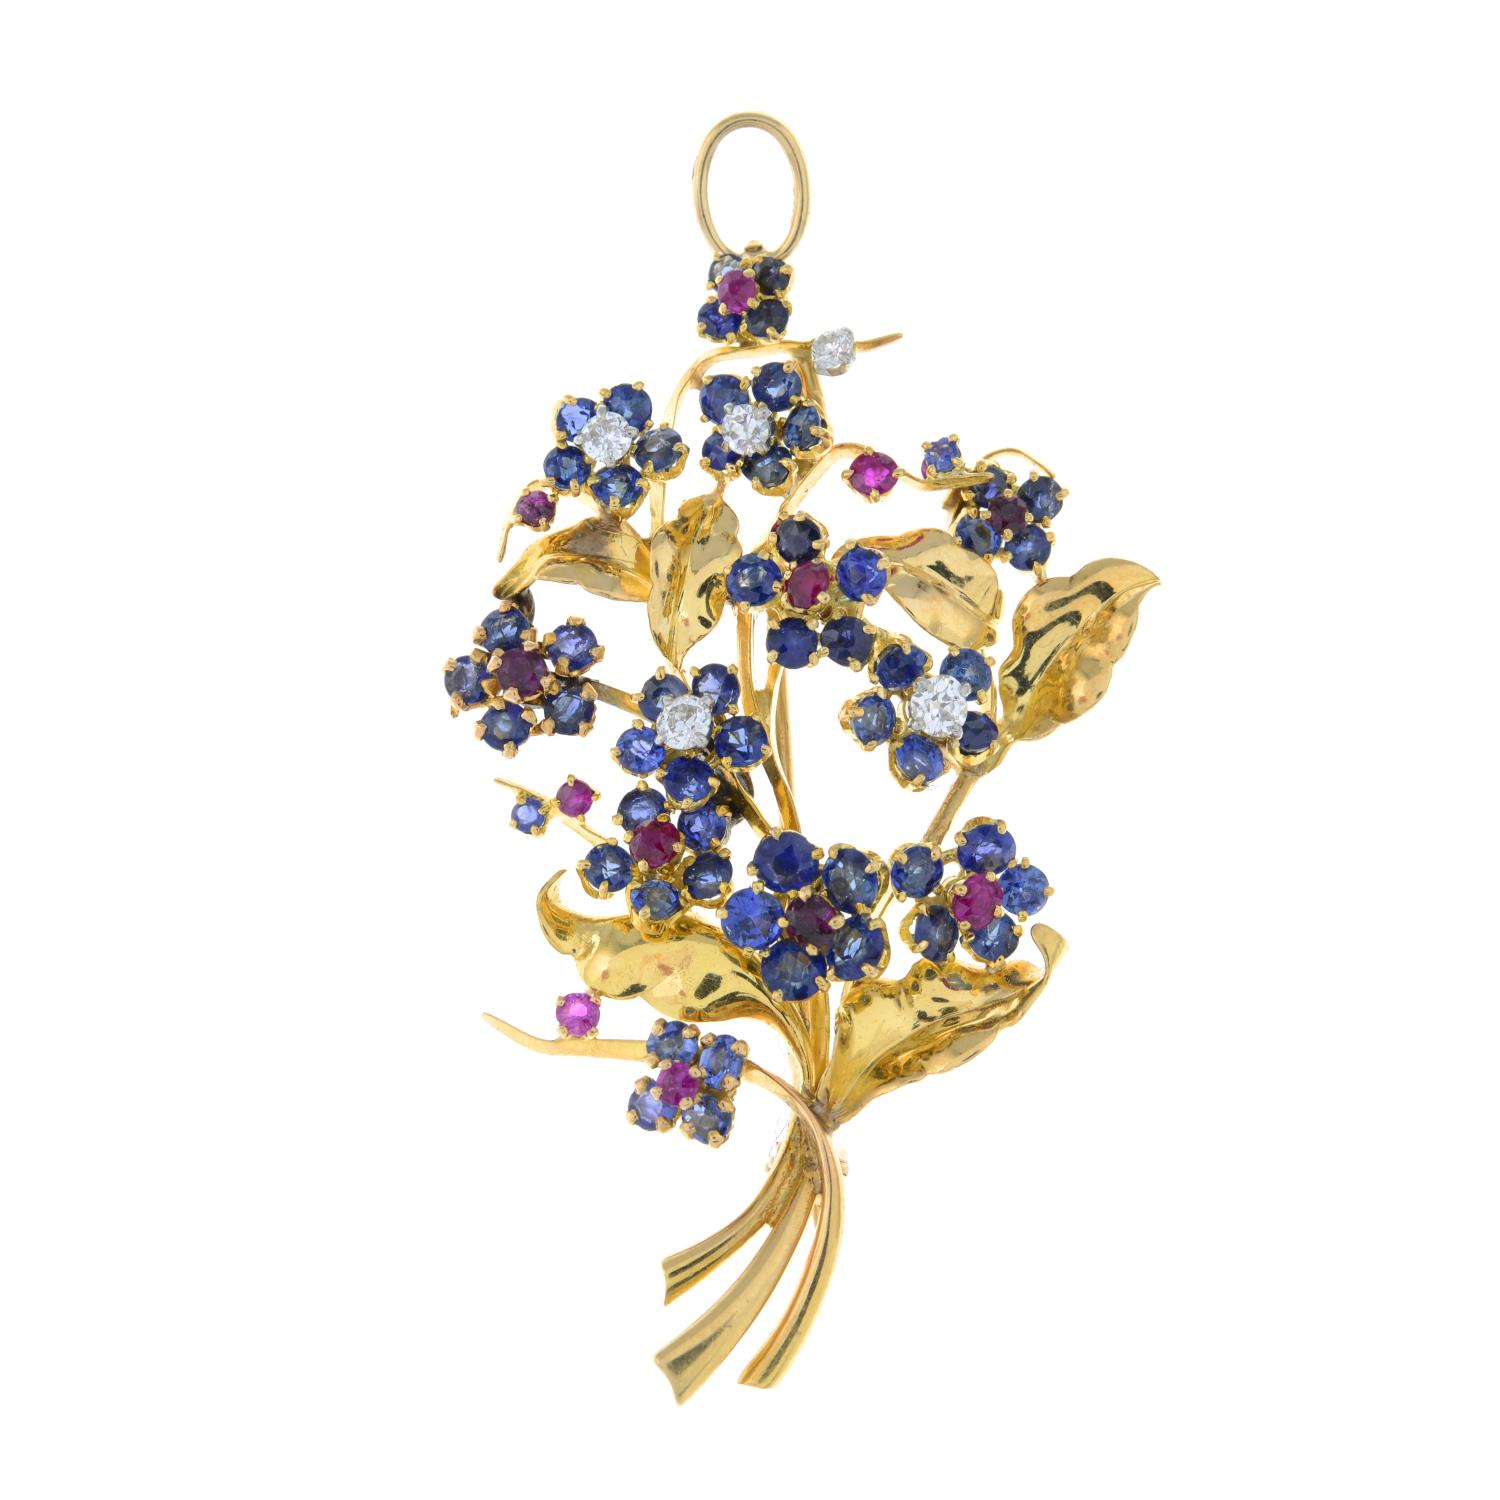 A mid 20th century 18ct gold sapphire, ruby and diamond floral brooch, by Mauboussin. - Image 2 of 4